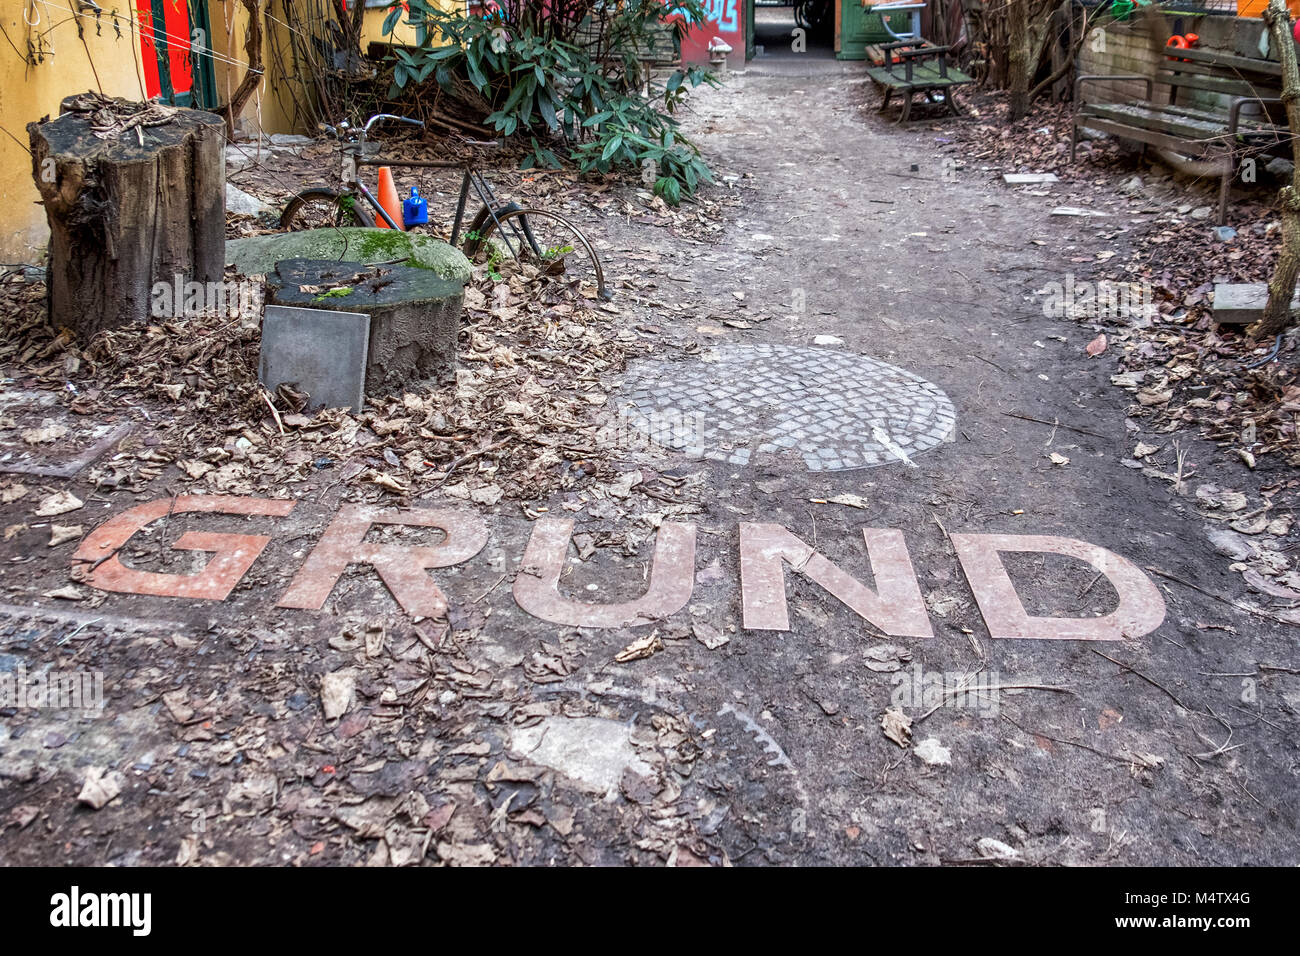 Berlin-Mitte, Prenzlauer Berg.Unusual Inner Courtyard with the bicycle & the word Grund embedded in ground. - Stock Image